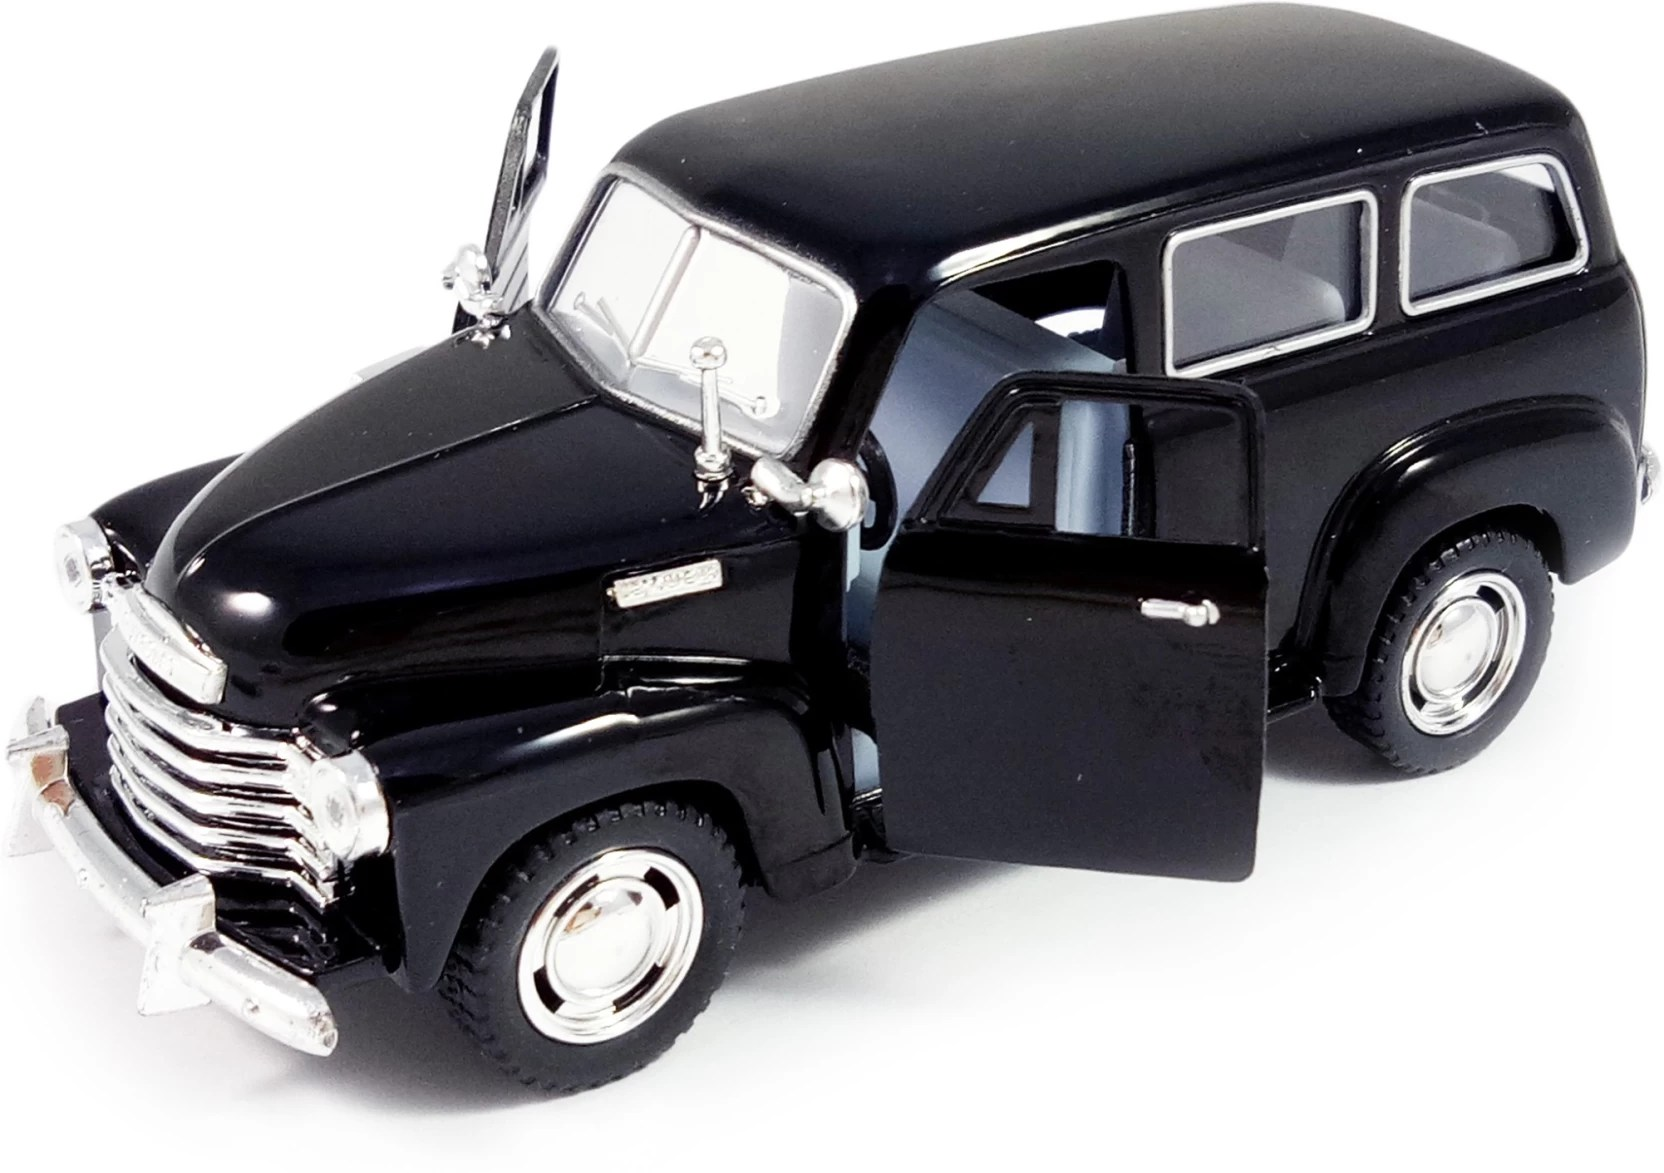 kinsmart 5 1 36 scale pull back action 1950 chevrolet suburban carryall car toys for kids from smiles creation black  [ 1664 x 1173 Pixel ]